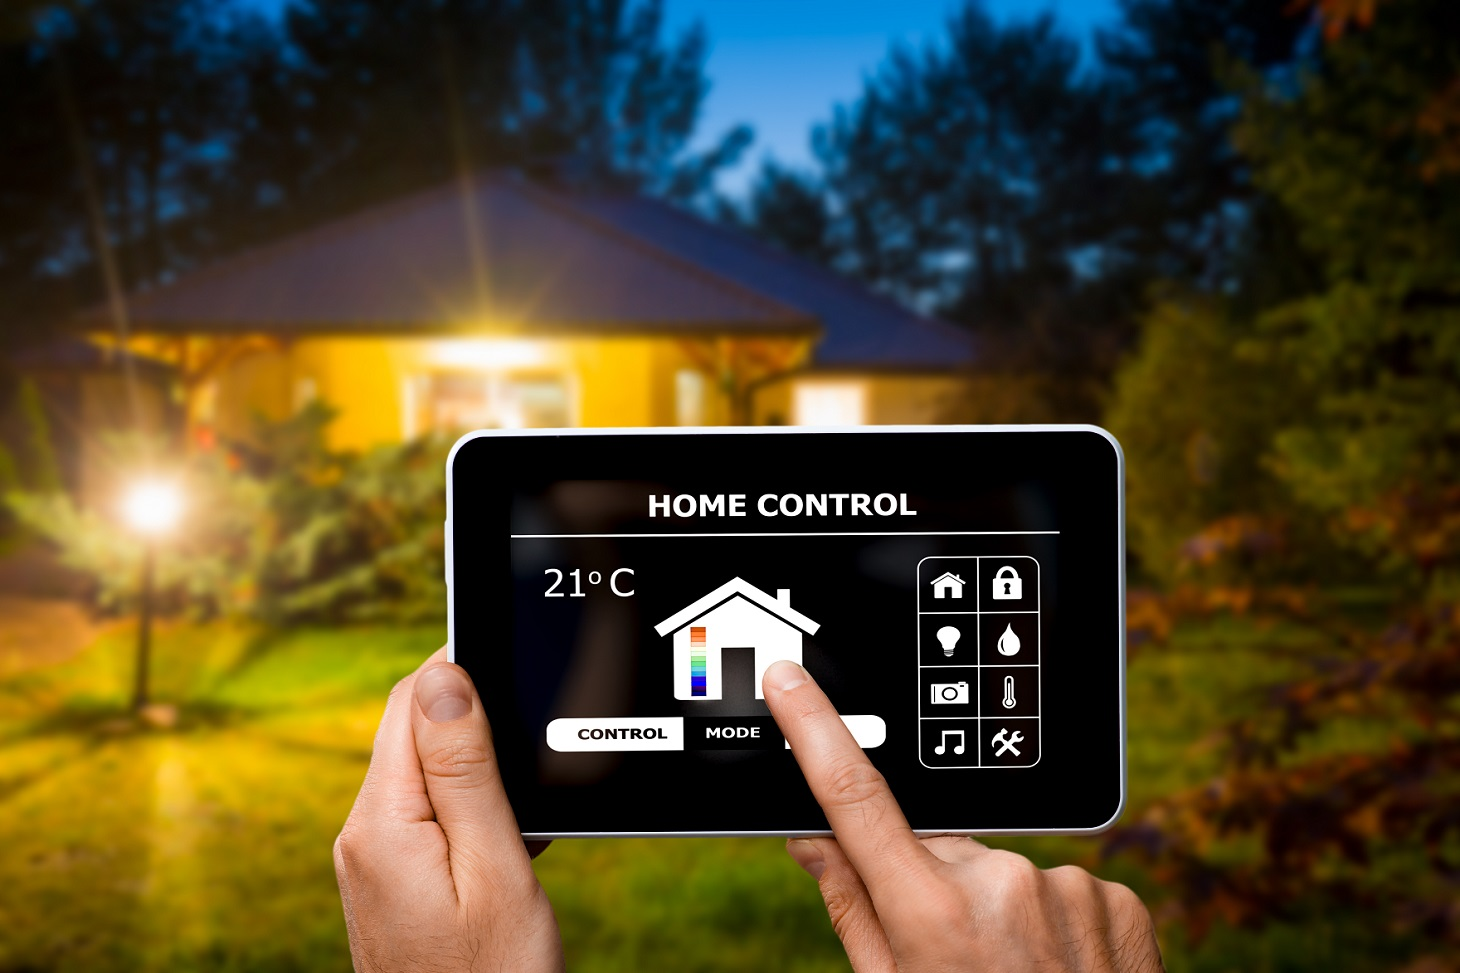 Remote home automation technology control system on a digital tablet or phone.